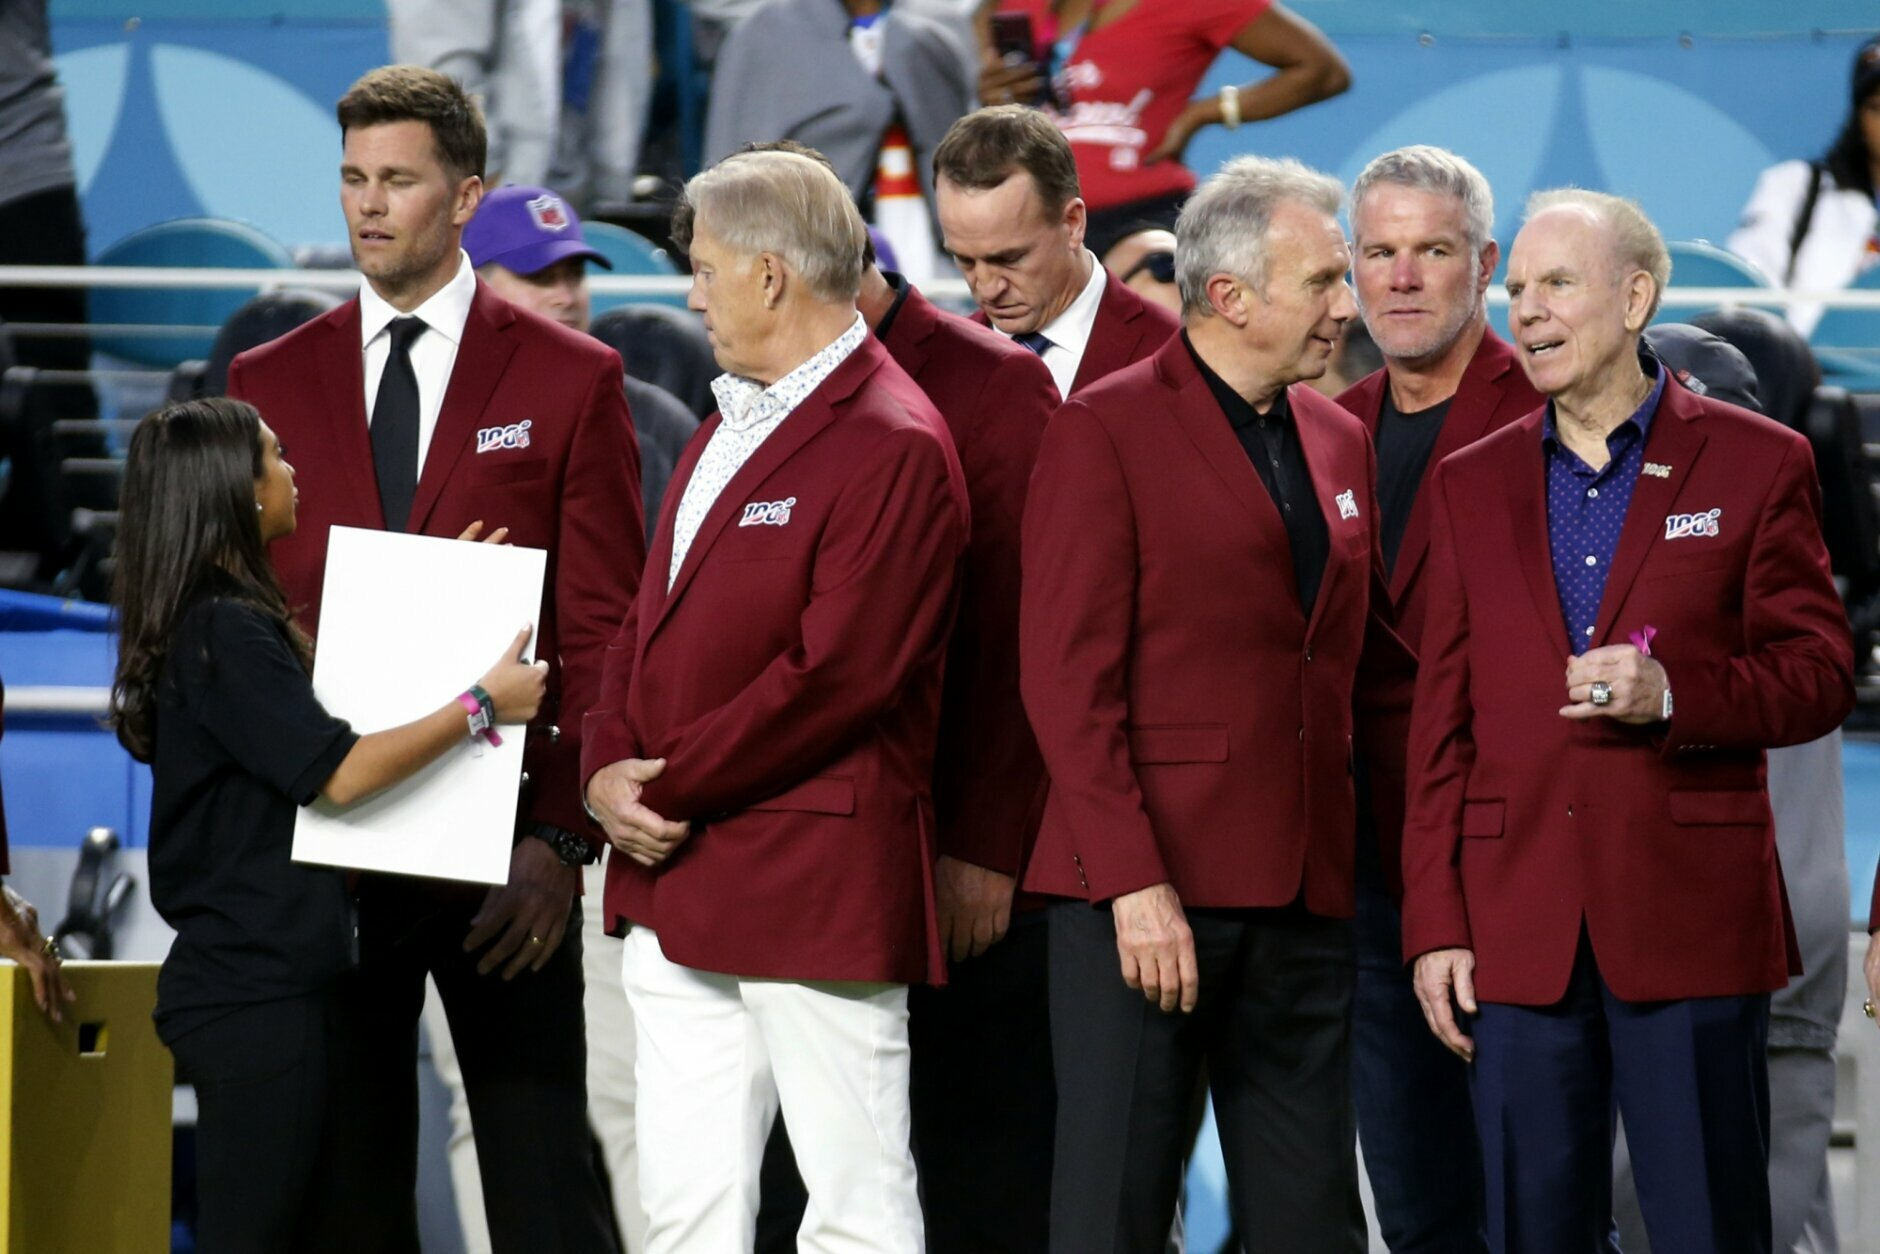 Tom Brady, John Elway, stands with Peyton Manning, Joe Montana, Brett Favre and Roger Staubach, from left, before the NFL Super Bowl 54 football game between the San Francisco 49ers and Kansas City Chiefs Sunday, Feb. 2, 2020, in Miami Gardens, Fla. (AP Photo/Mark Humphrey)